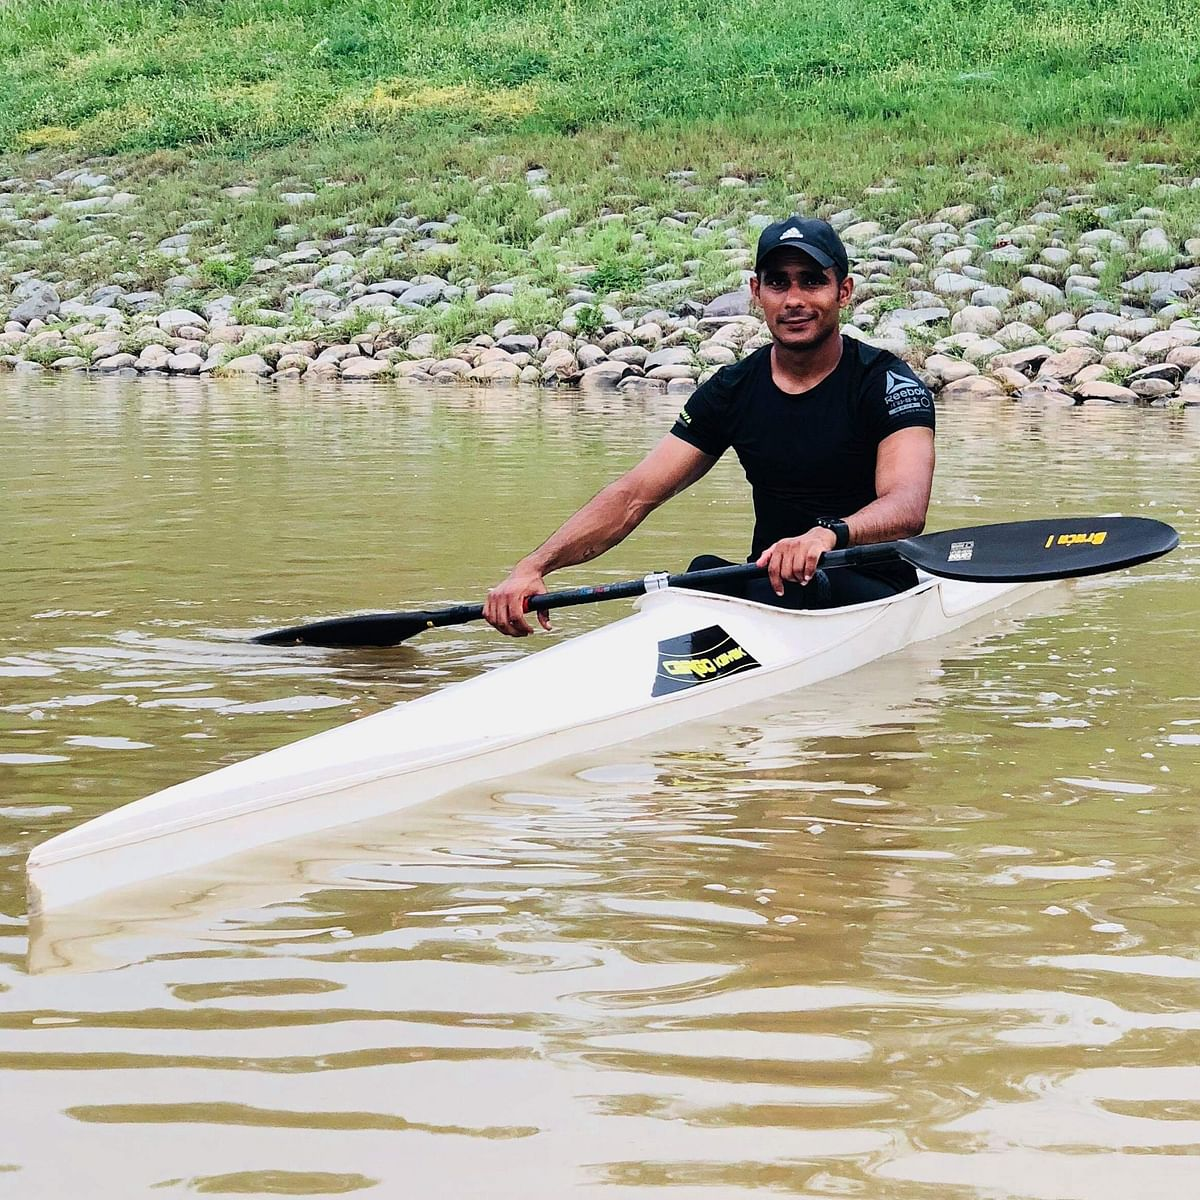 ICF Canoe Sprint World Cup 2020: Bhopal's Sumit Shokeen is India's sole representative